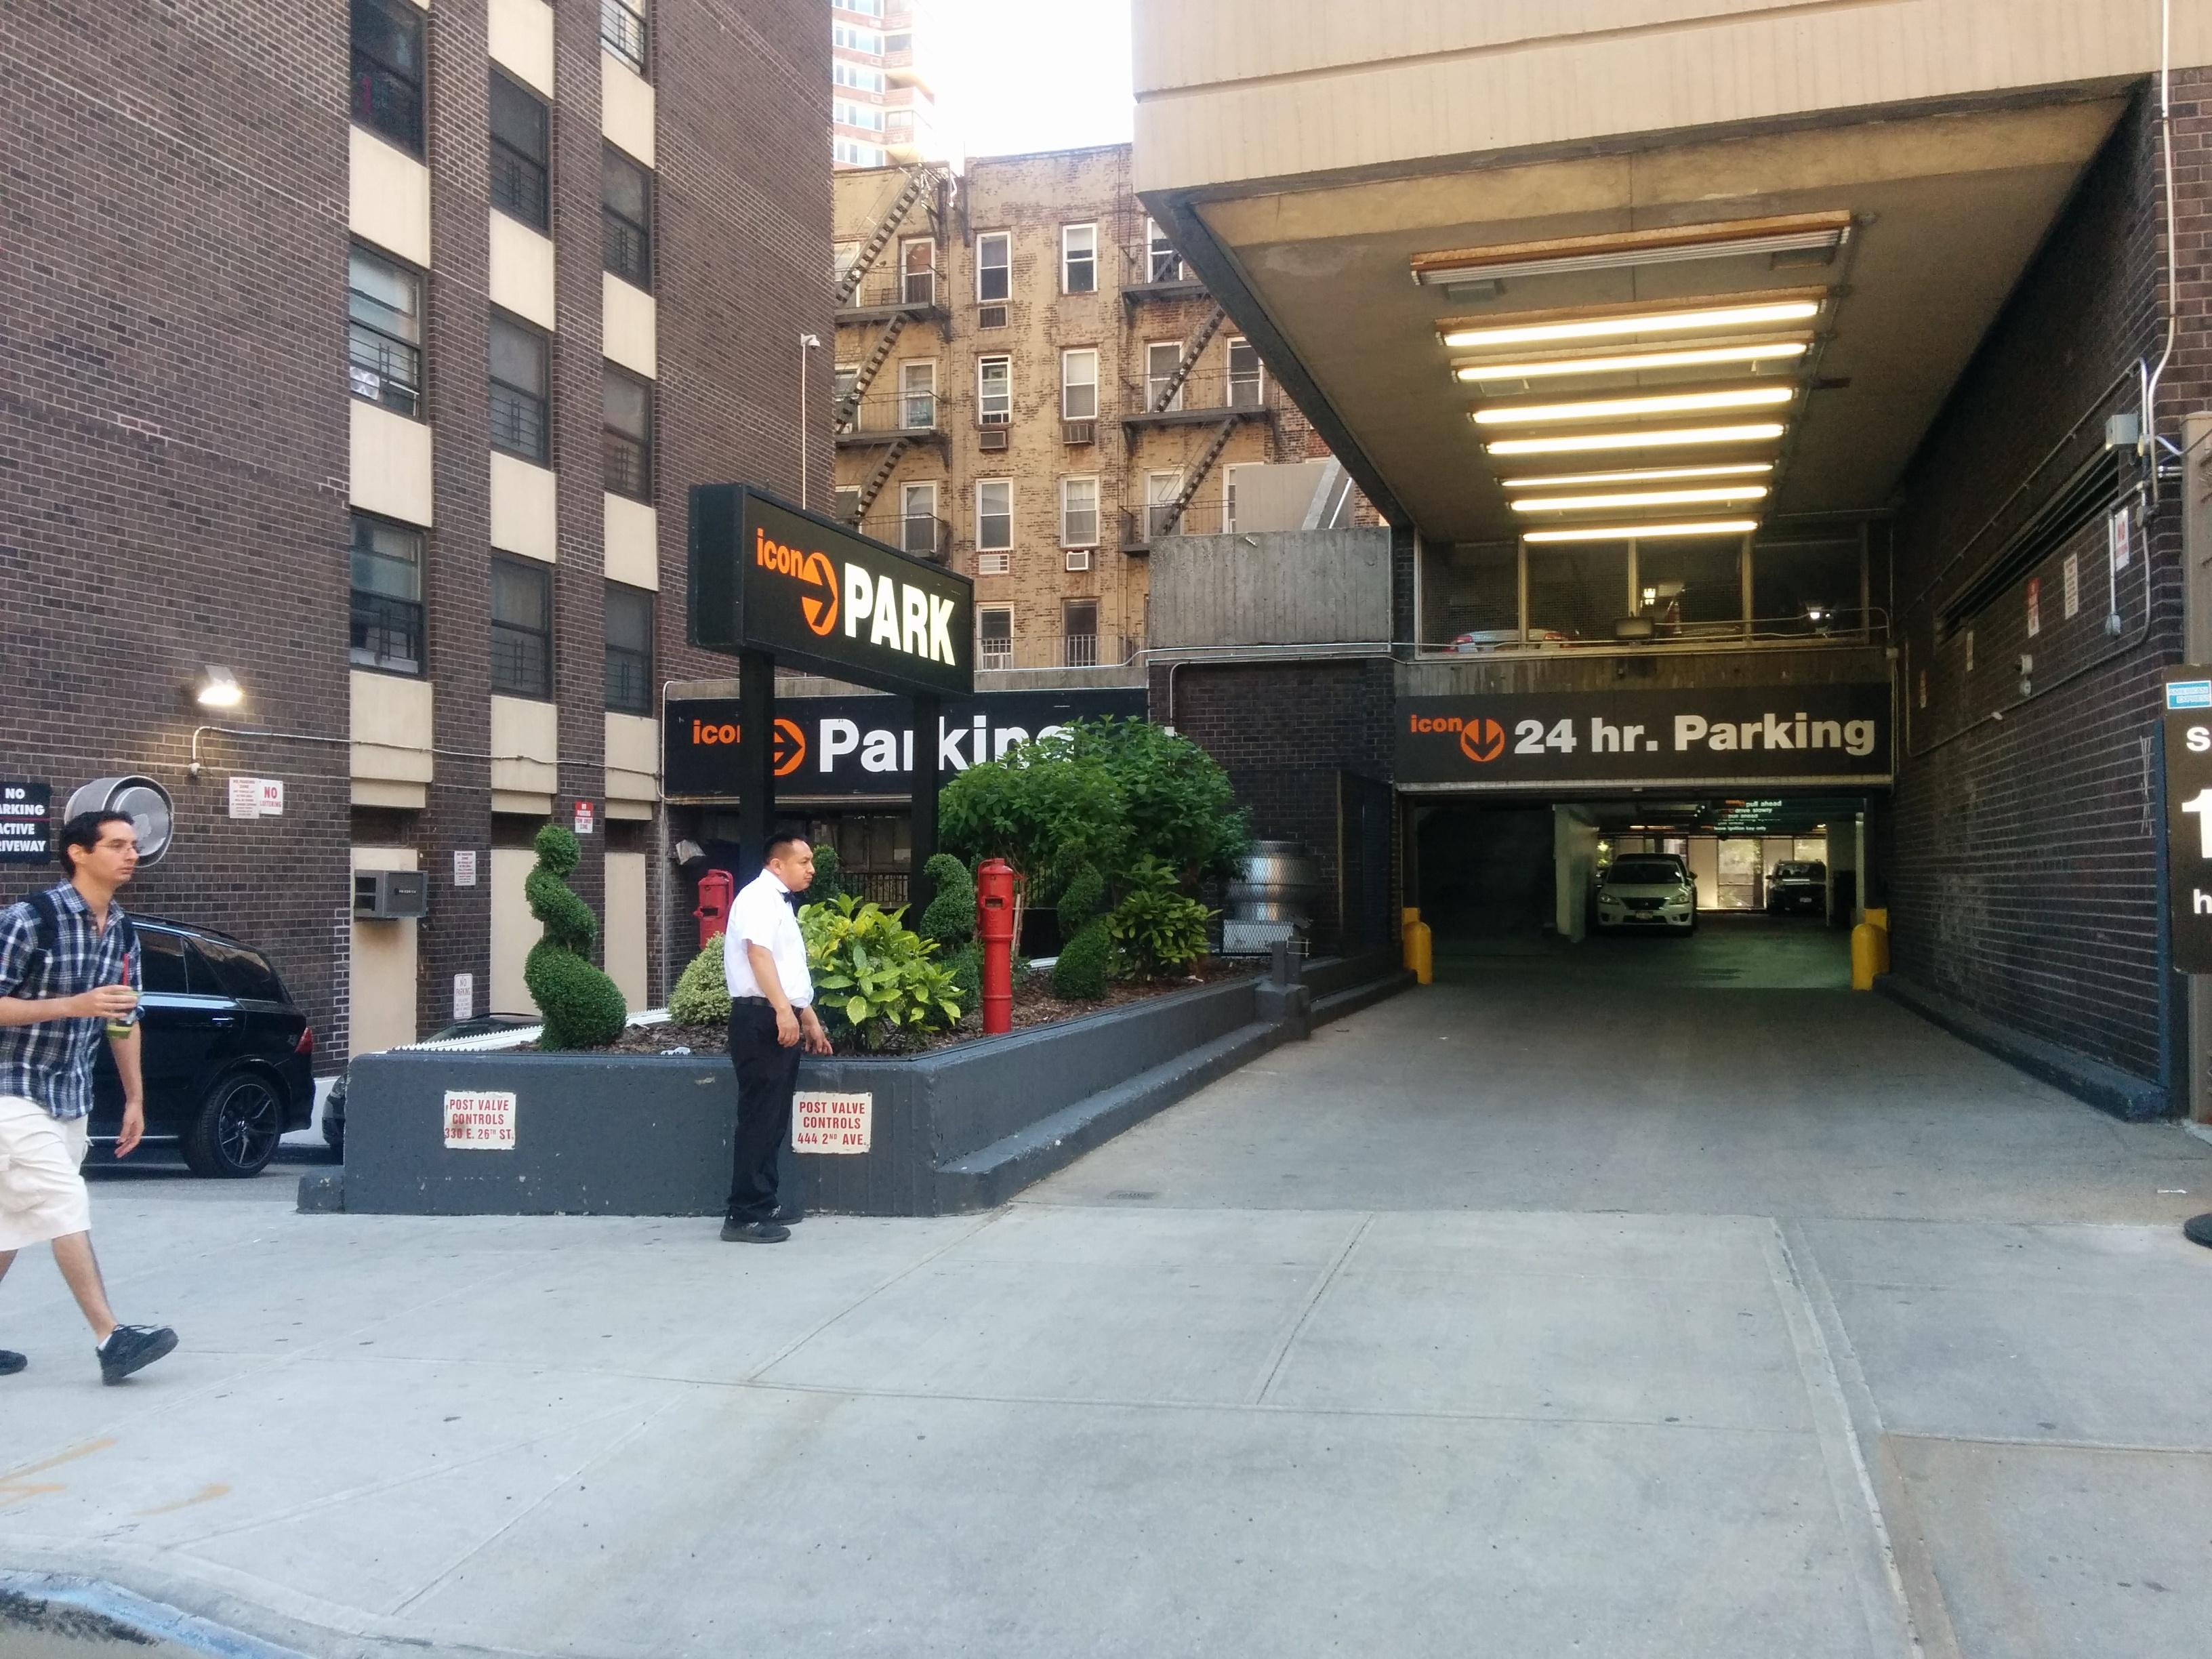 South plaza garage parking in new york parkme for Ny city parking garages